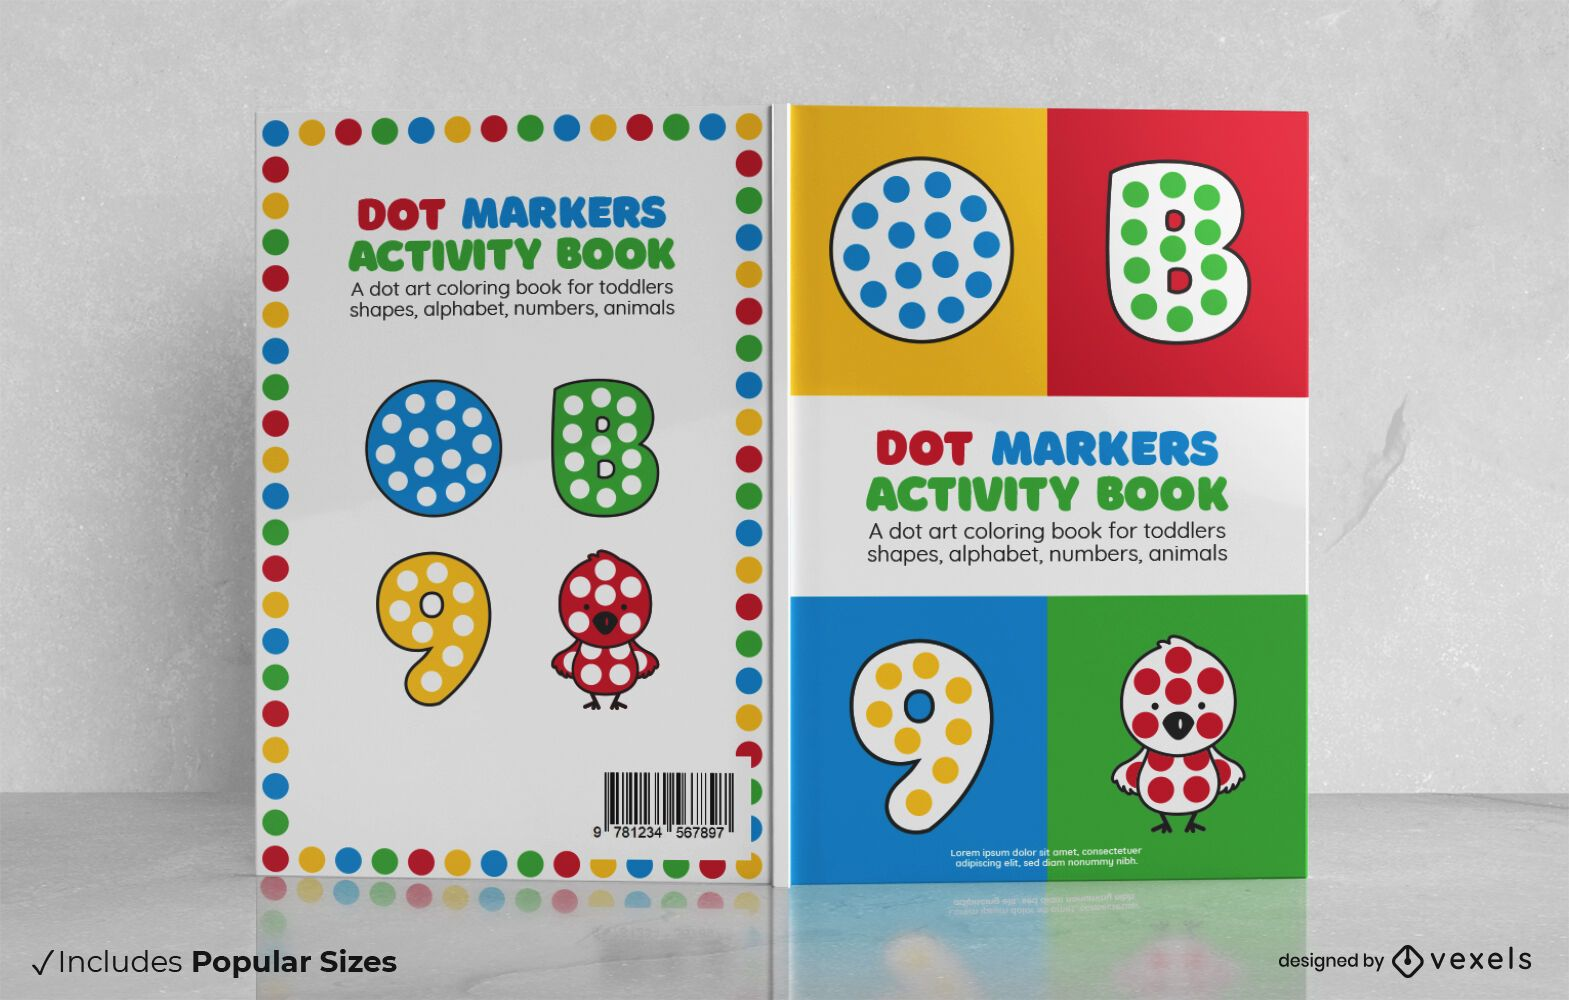 Dot markers activity book cover design